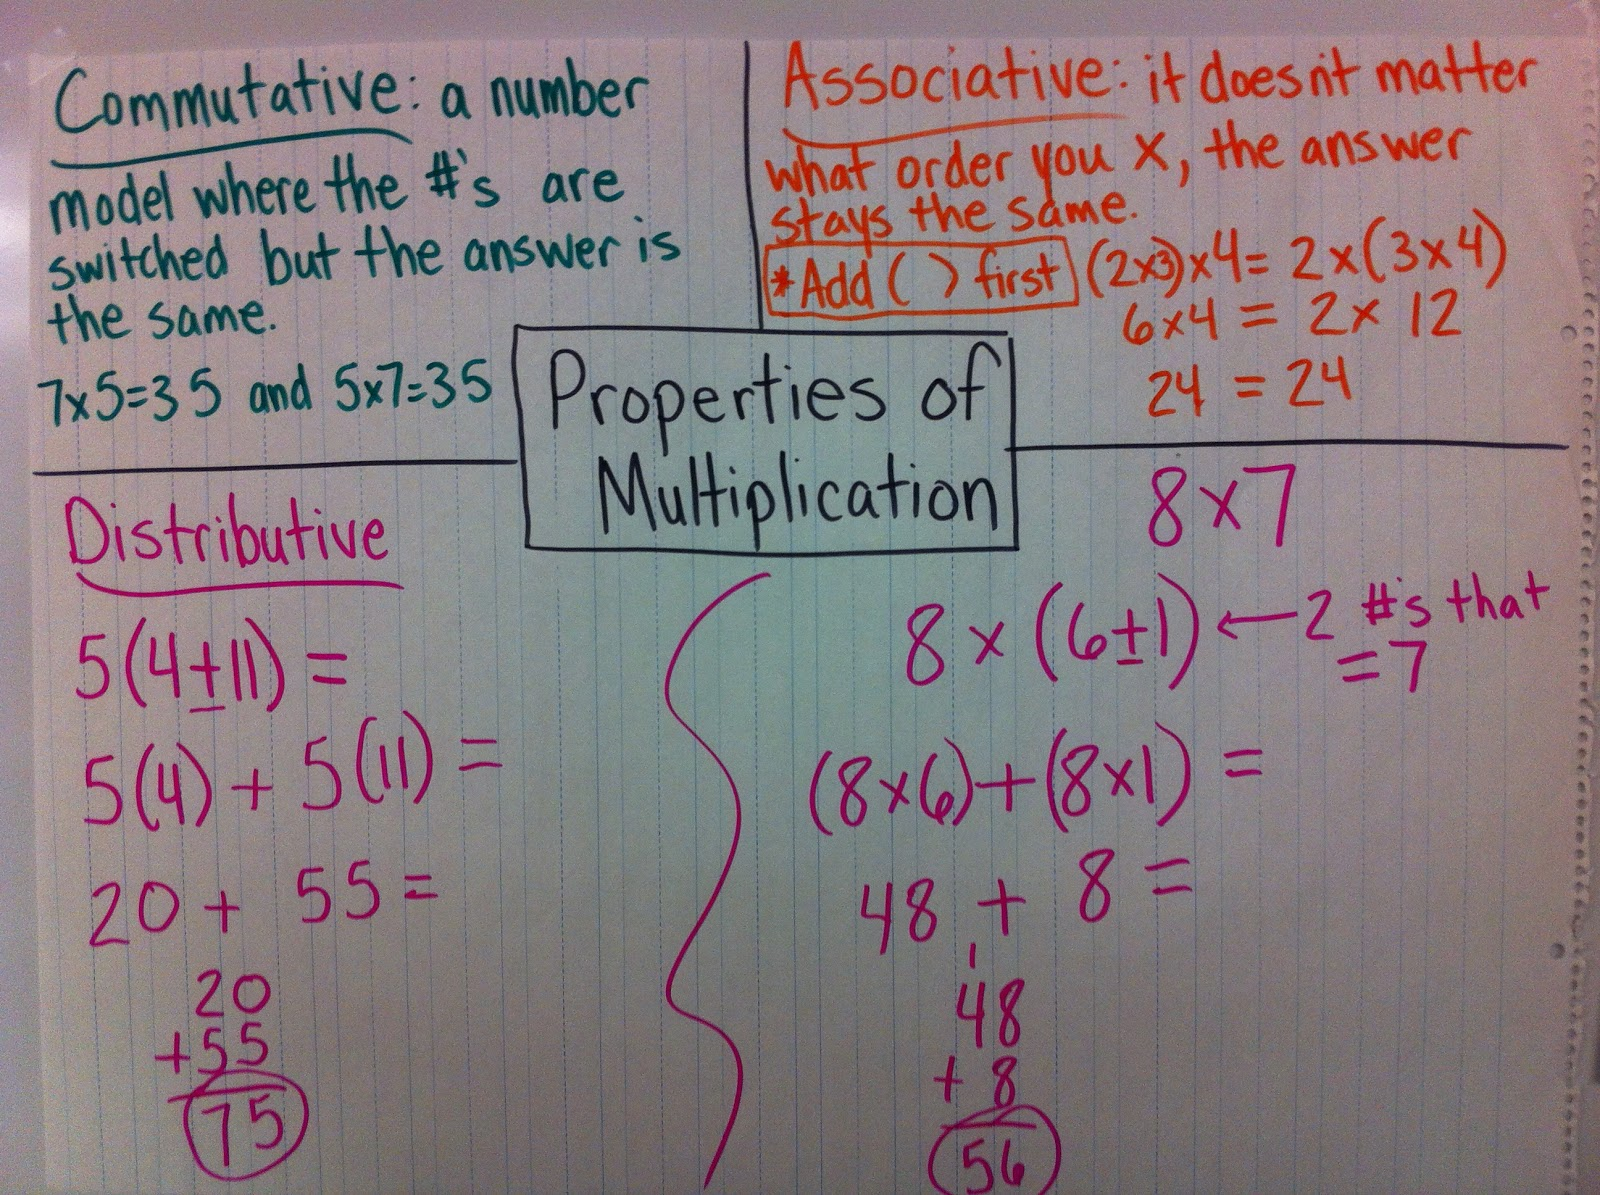 Commutative Property Of Addition Worksheets 3rd Grade math – Associative Property of Addition and Multiplication Worksheets